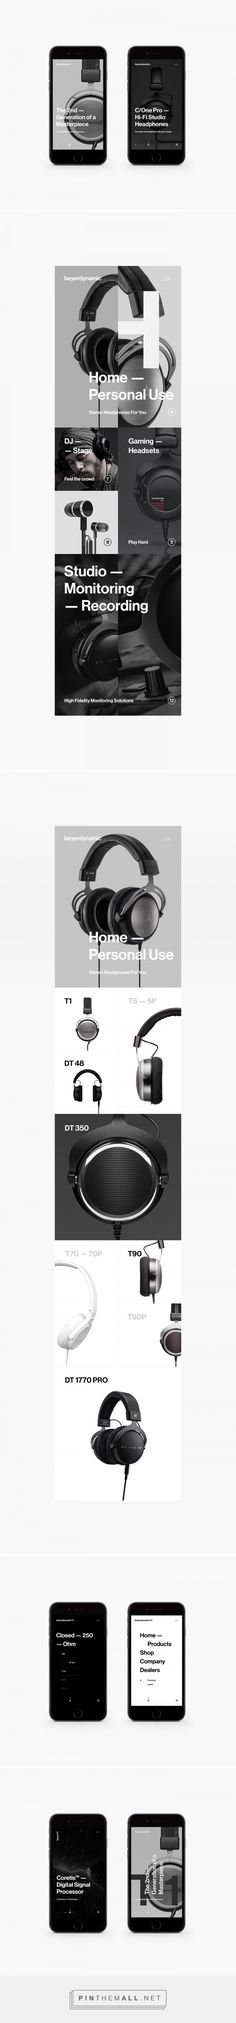 Beyerdynamic // BRDNMC on Behance - created via https://pinthemall.net